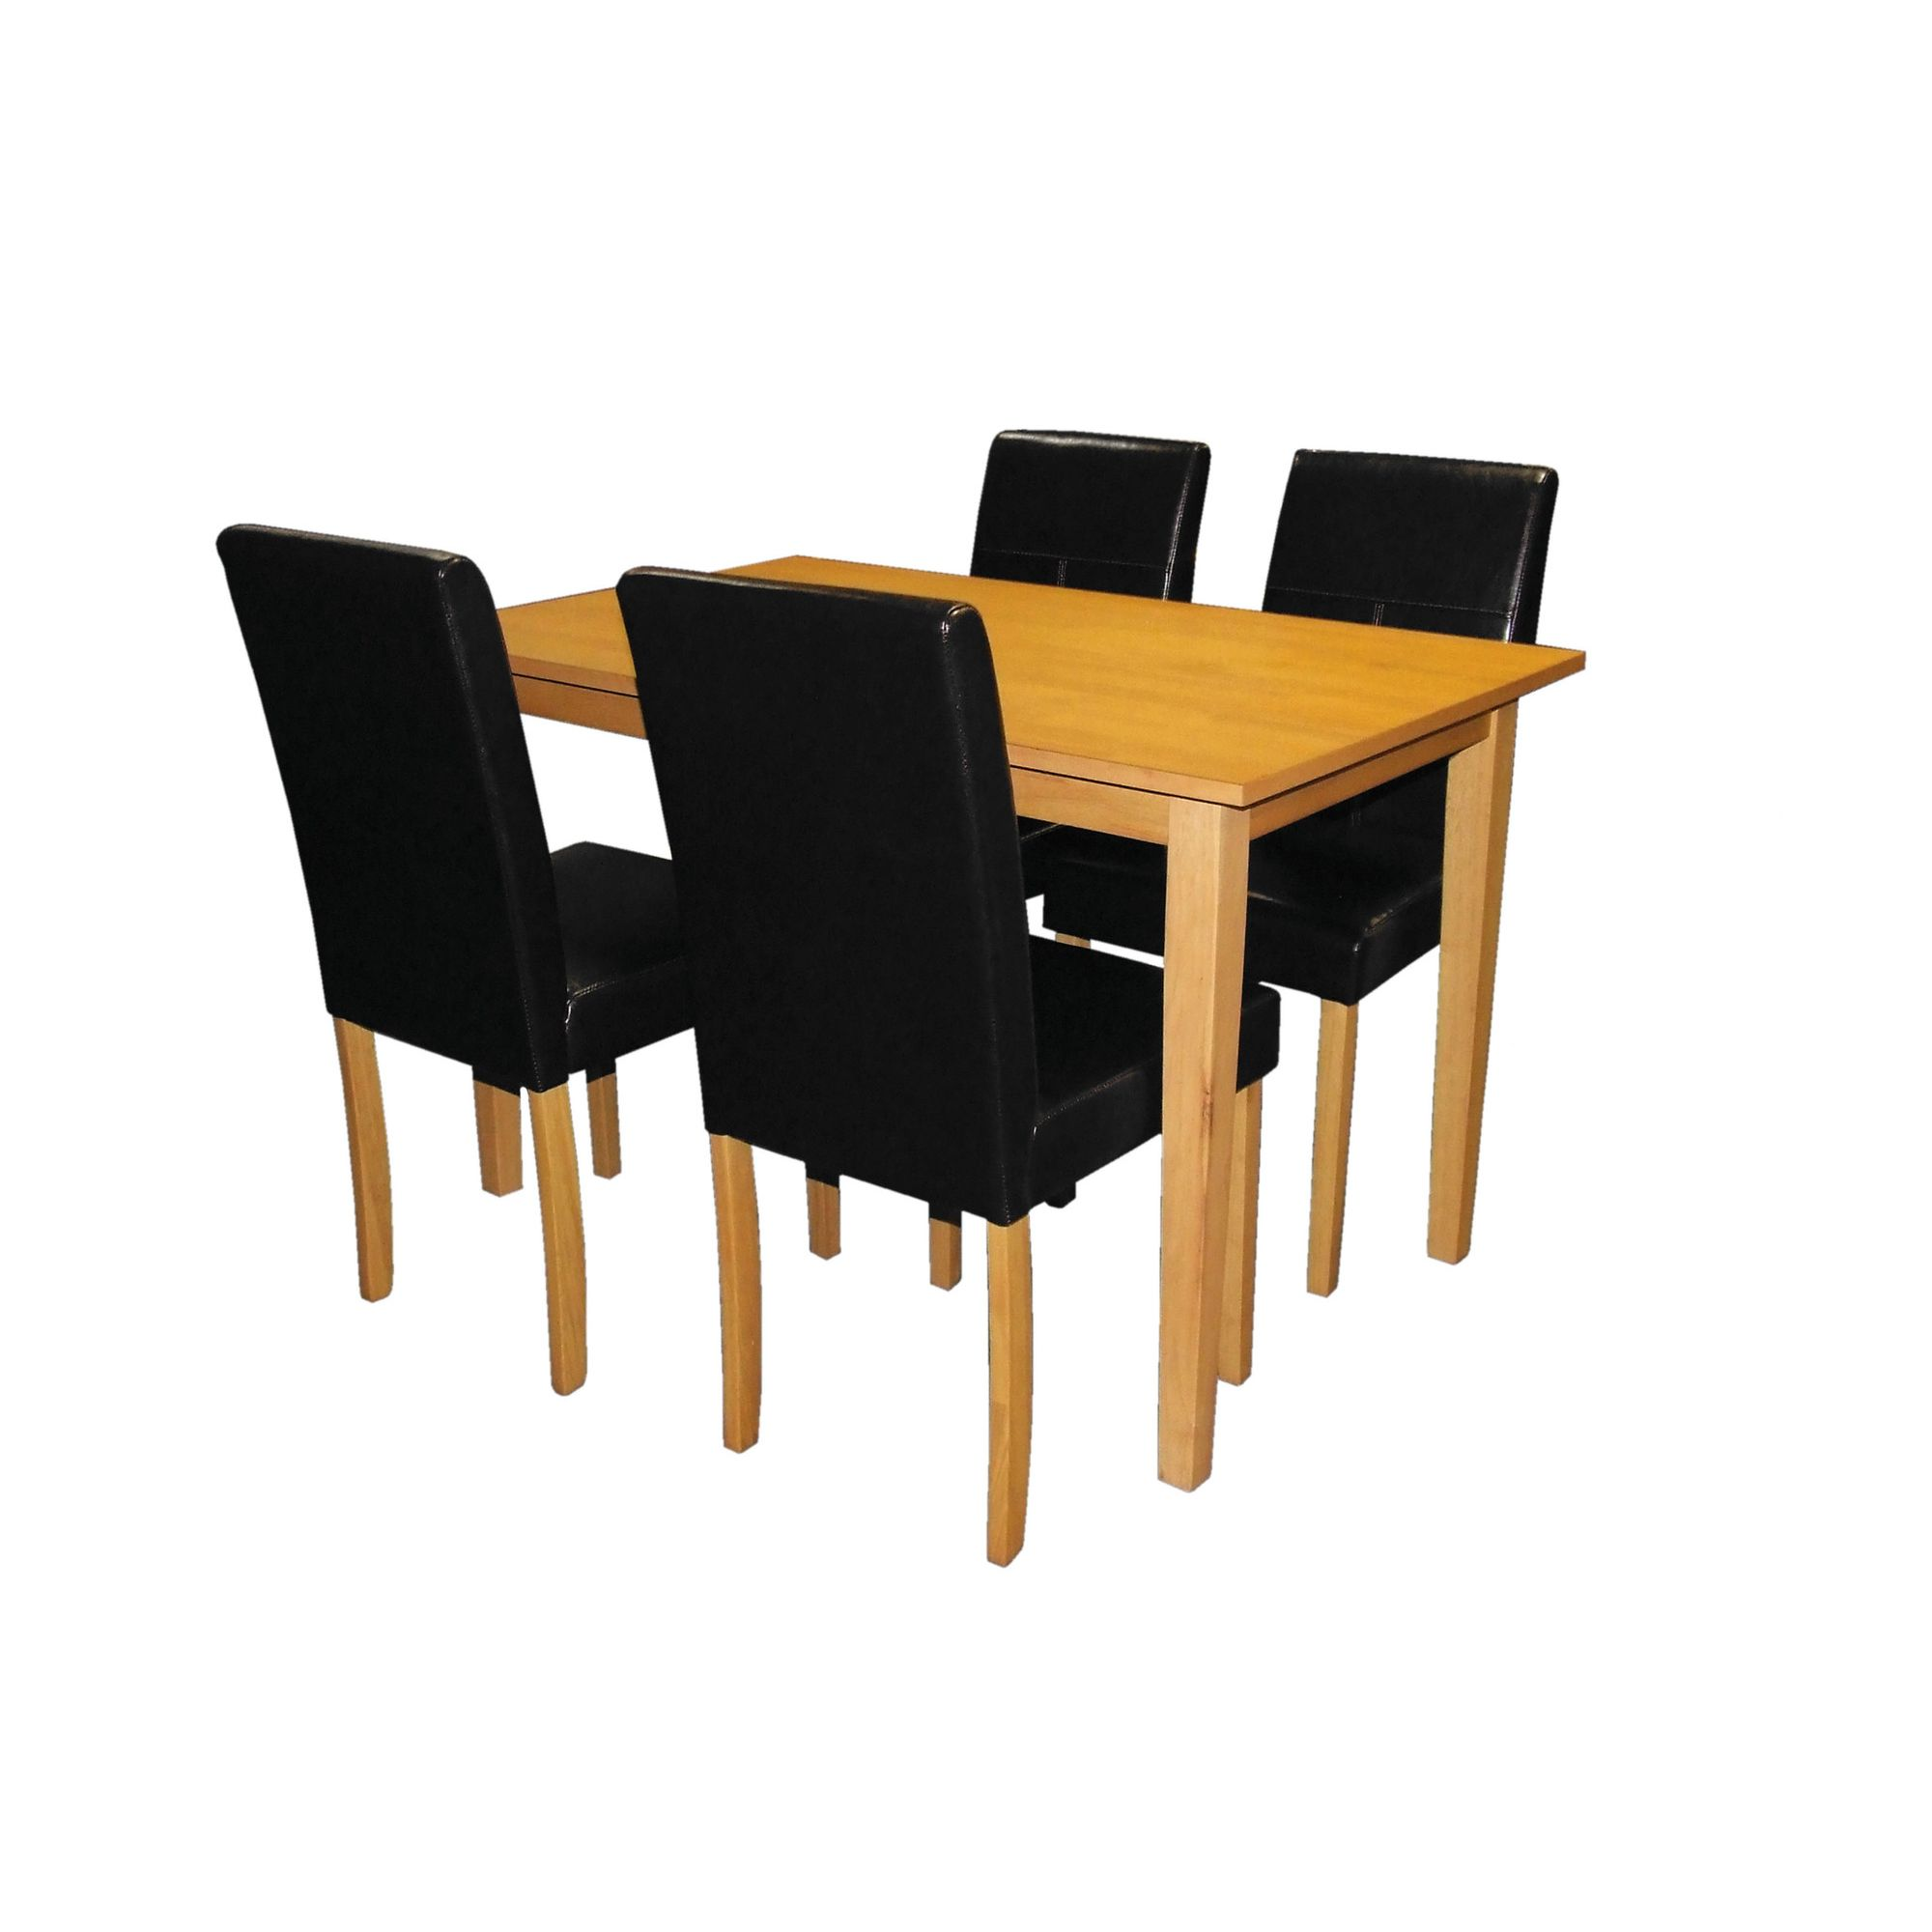 Premier Housewares 5 Piece Dining Set with Light Solid Rubberwood Cozinha - Black at Tescos Direct